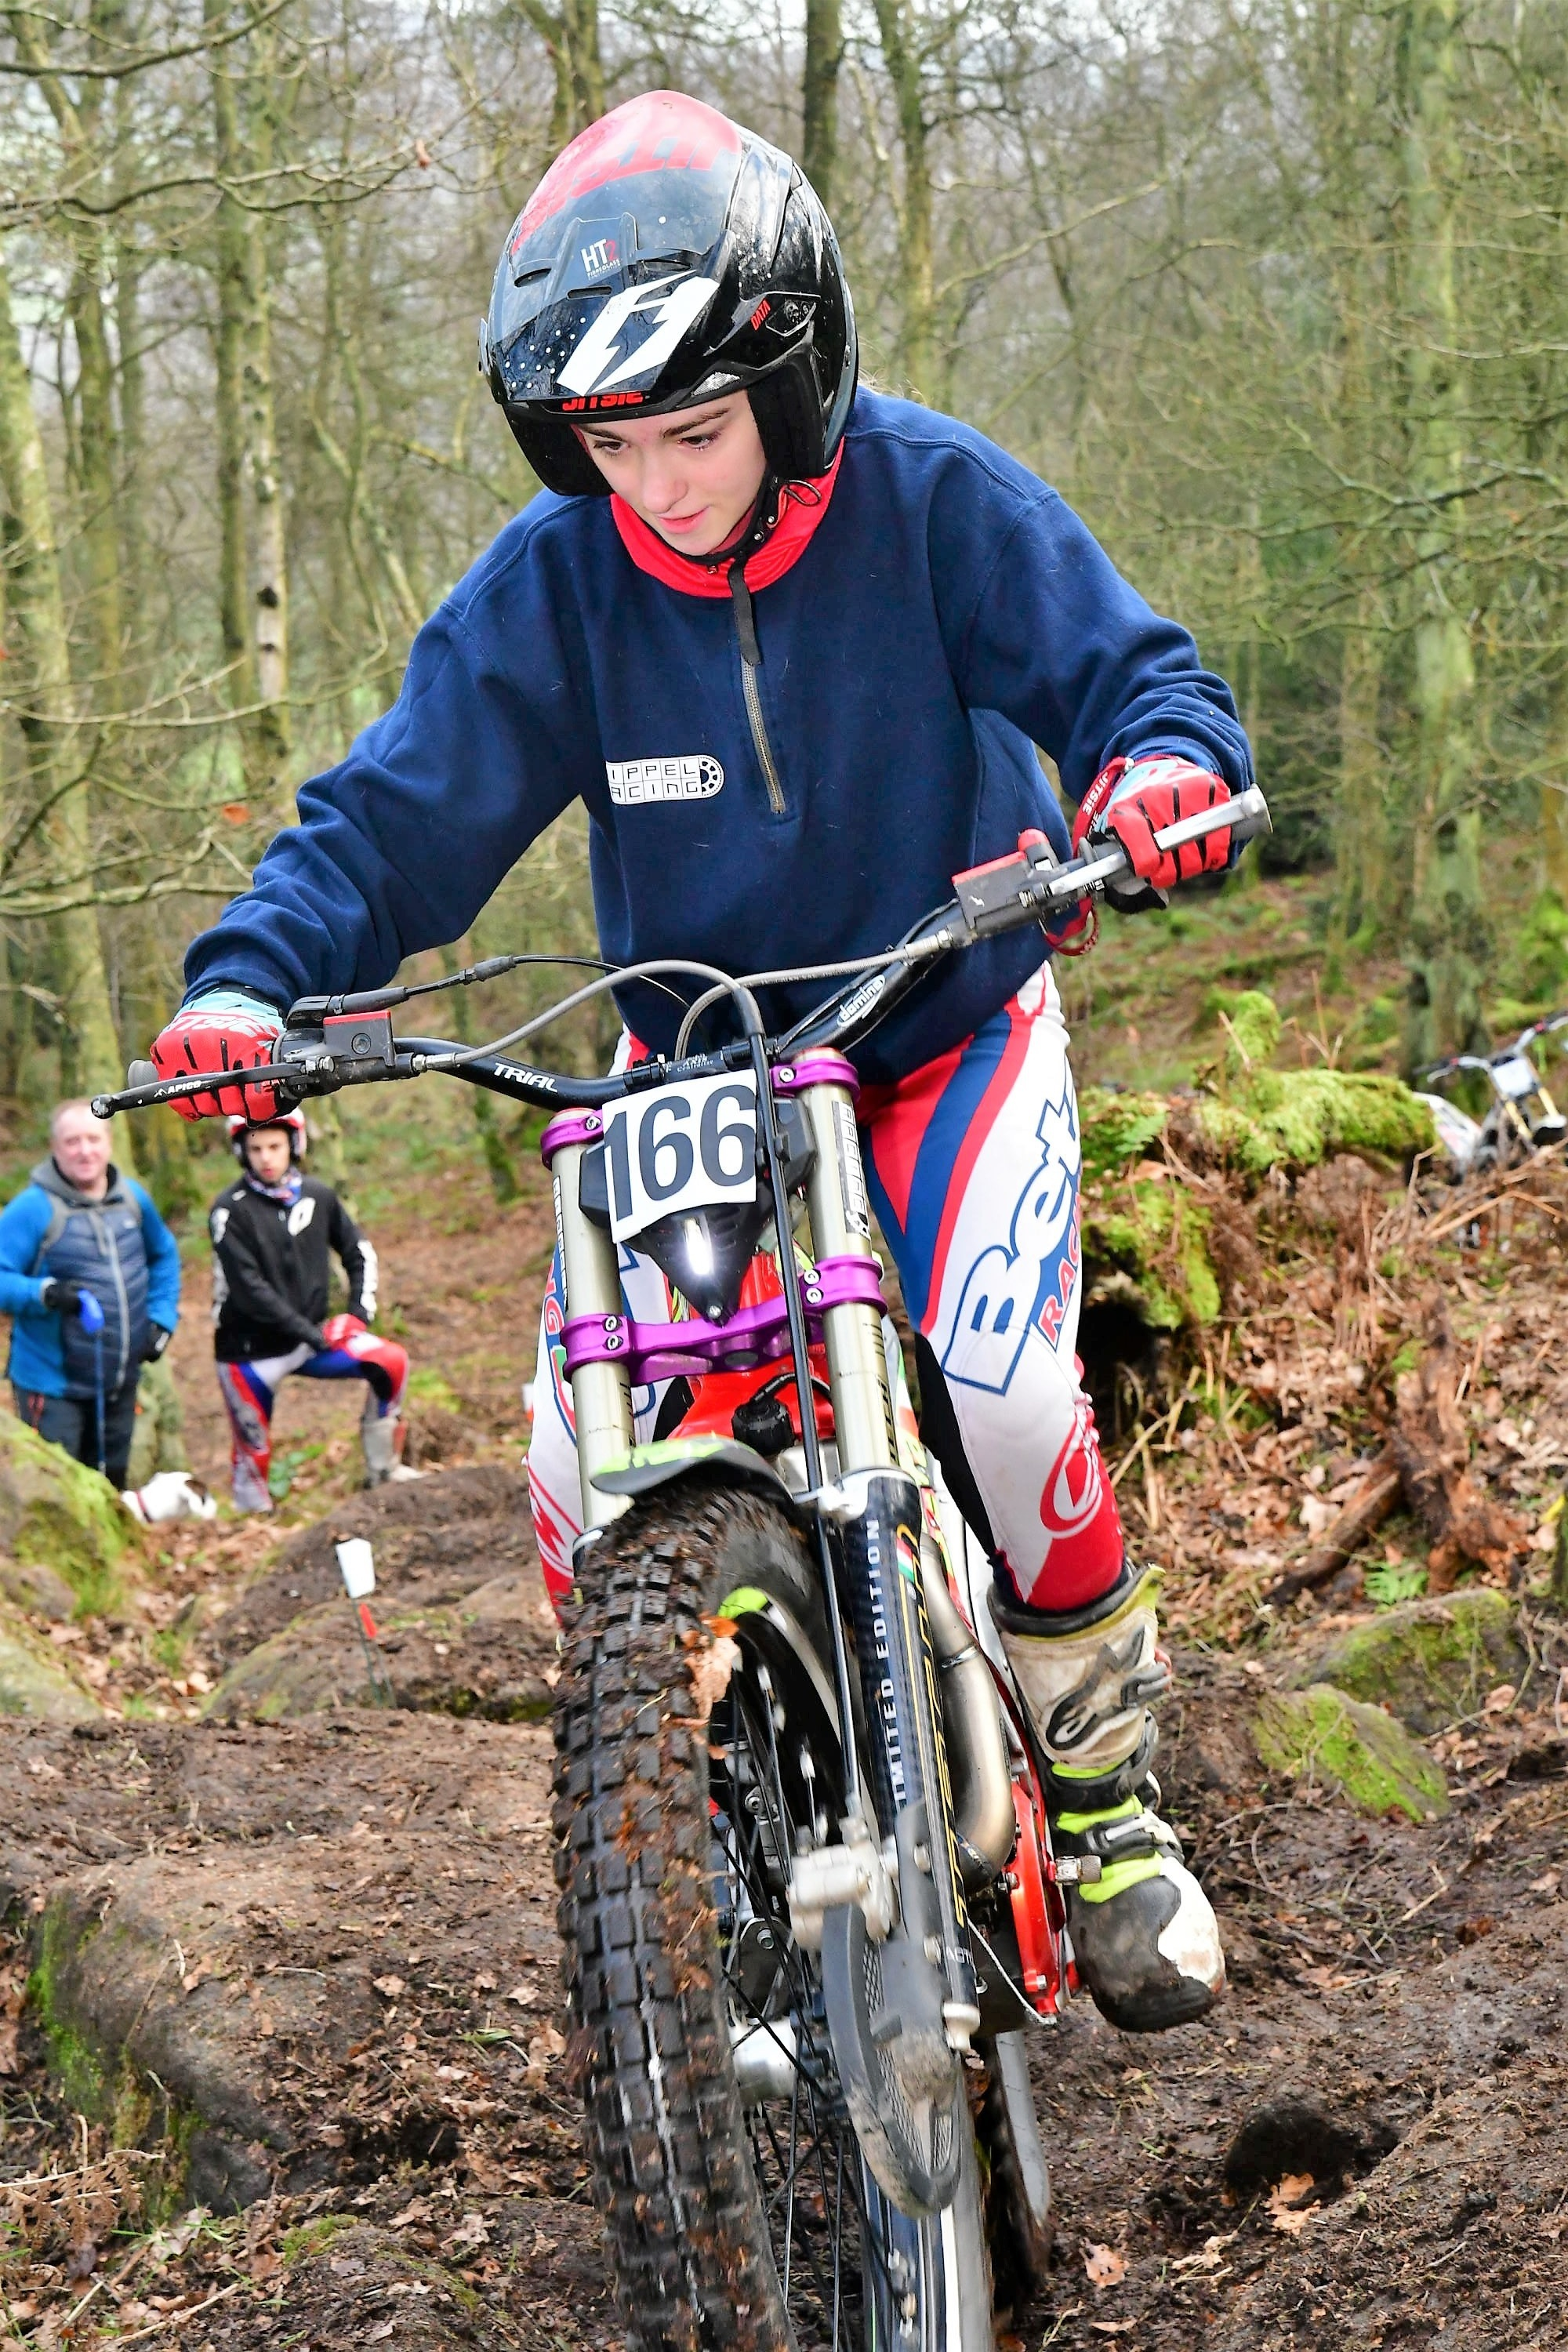 Gabby Whitham, of Silsden, rides in the New Year's Day trial at Bingley. Picture: Barry Robinson